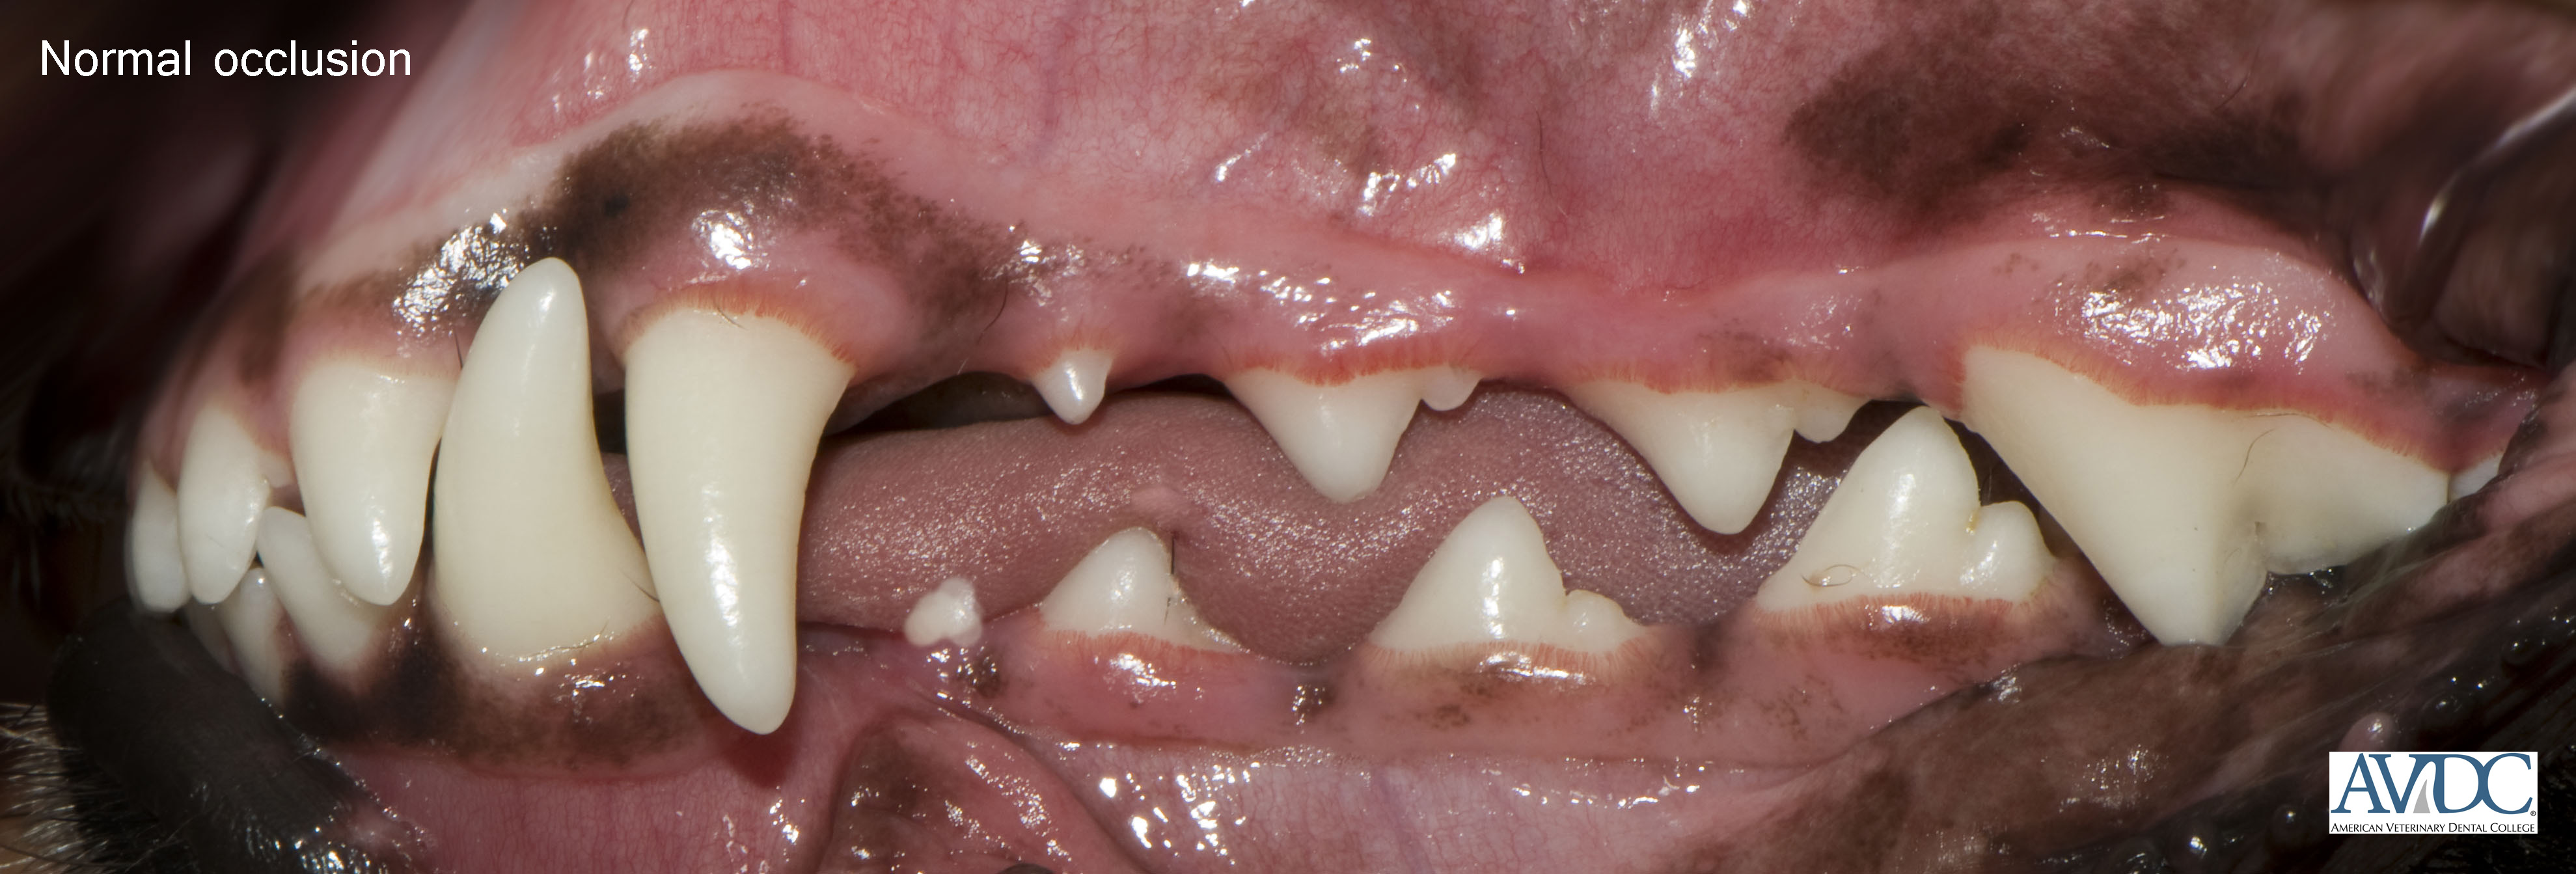 Normal buccal 2 - Malocclusions (misaligned teeth)